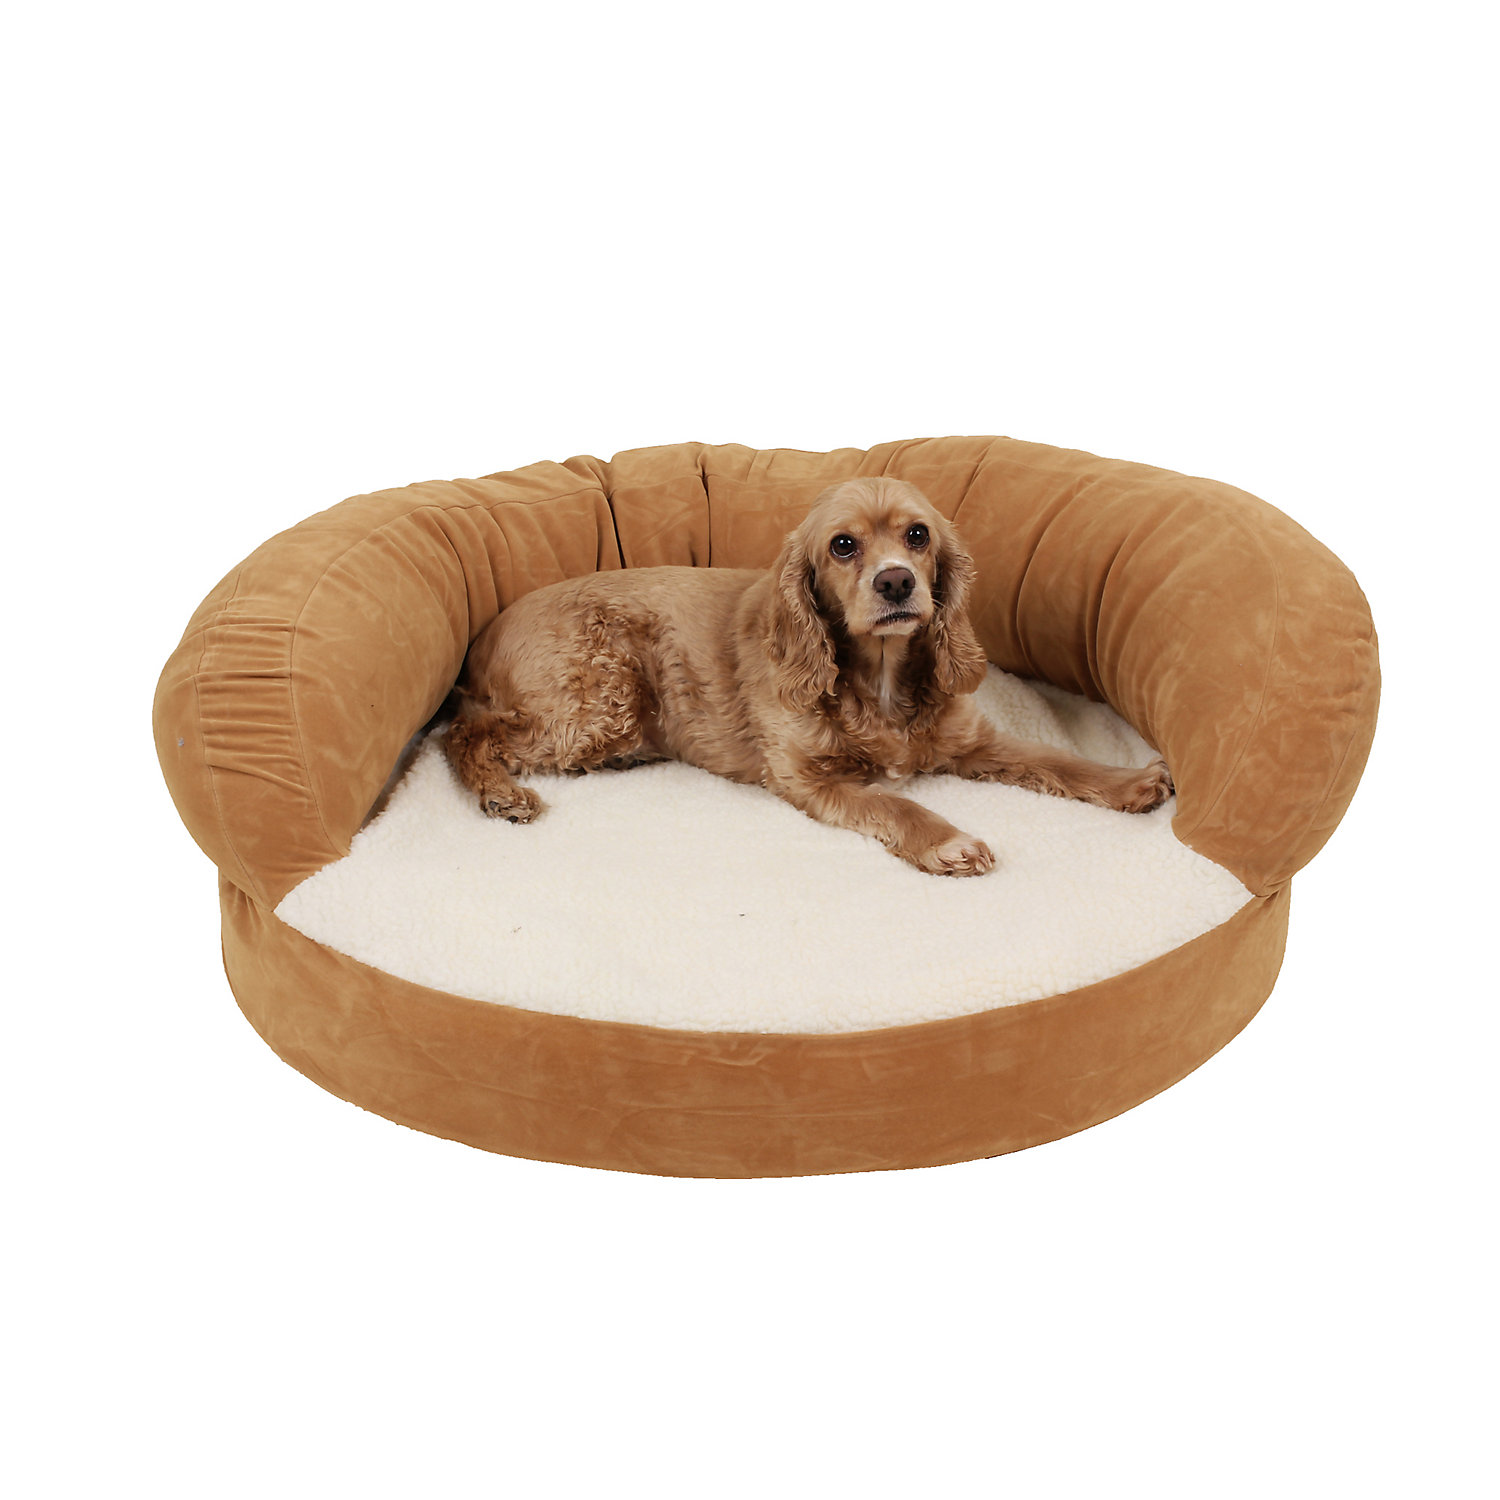 Carolina Pet Company Caramel Colored Orthopedic Bolster Dog Bed 12 H X 42 Diameter Medium Brown